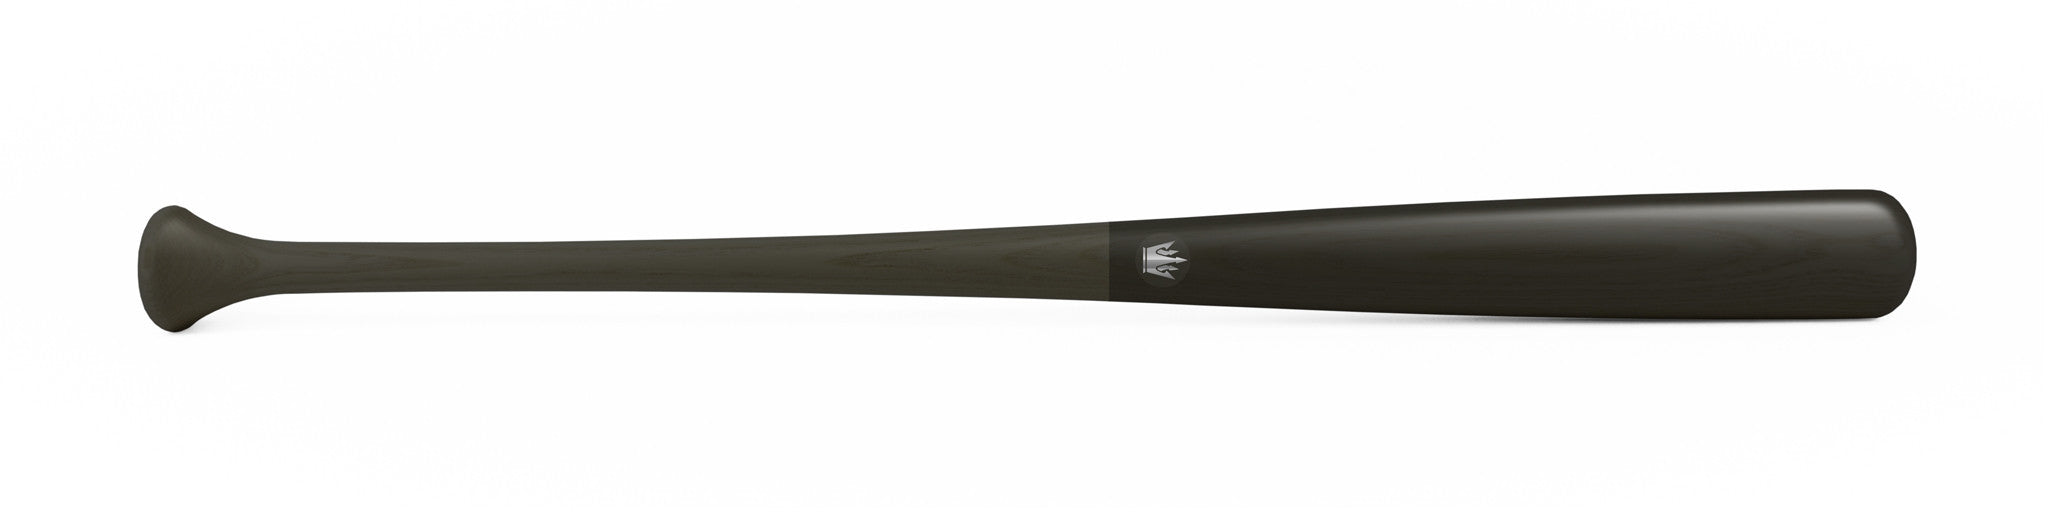 Wood bat - Ash model 280 Black Knight - 30